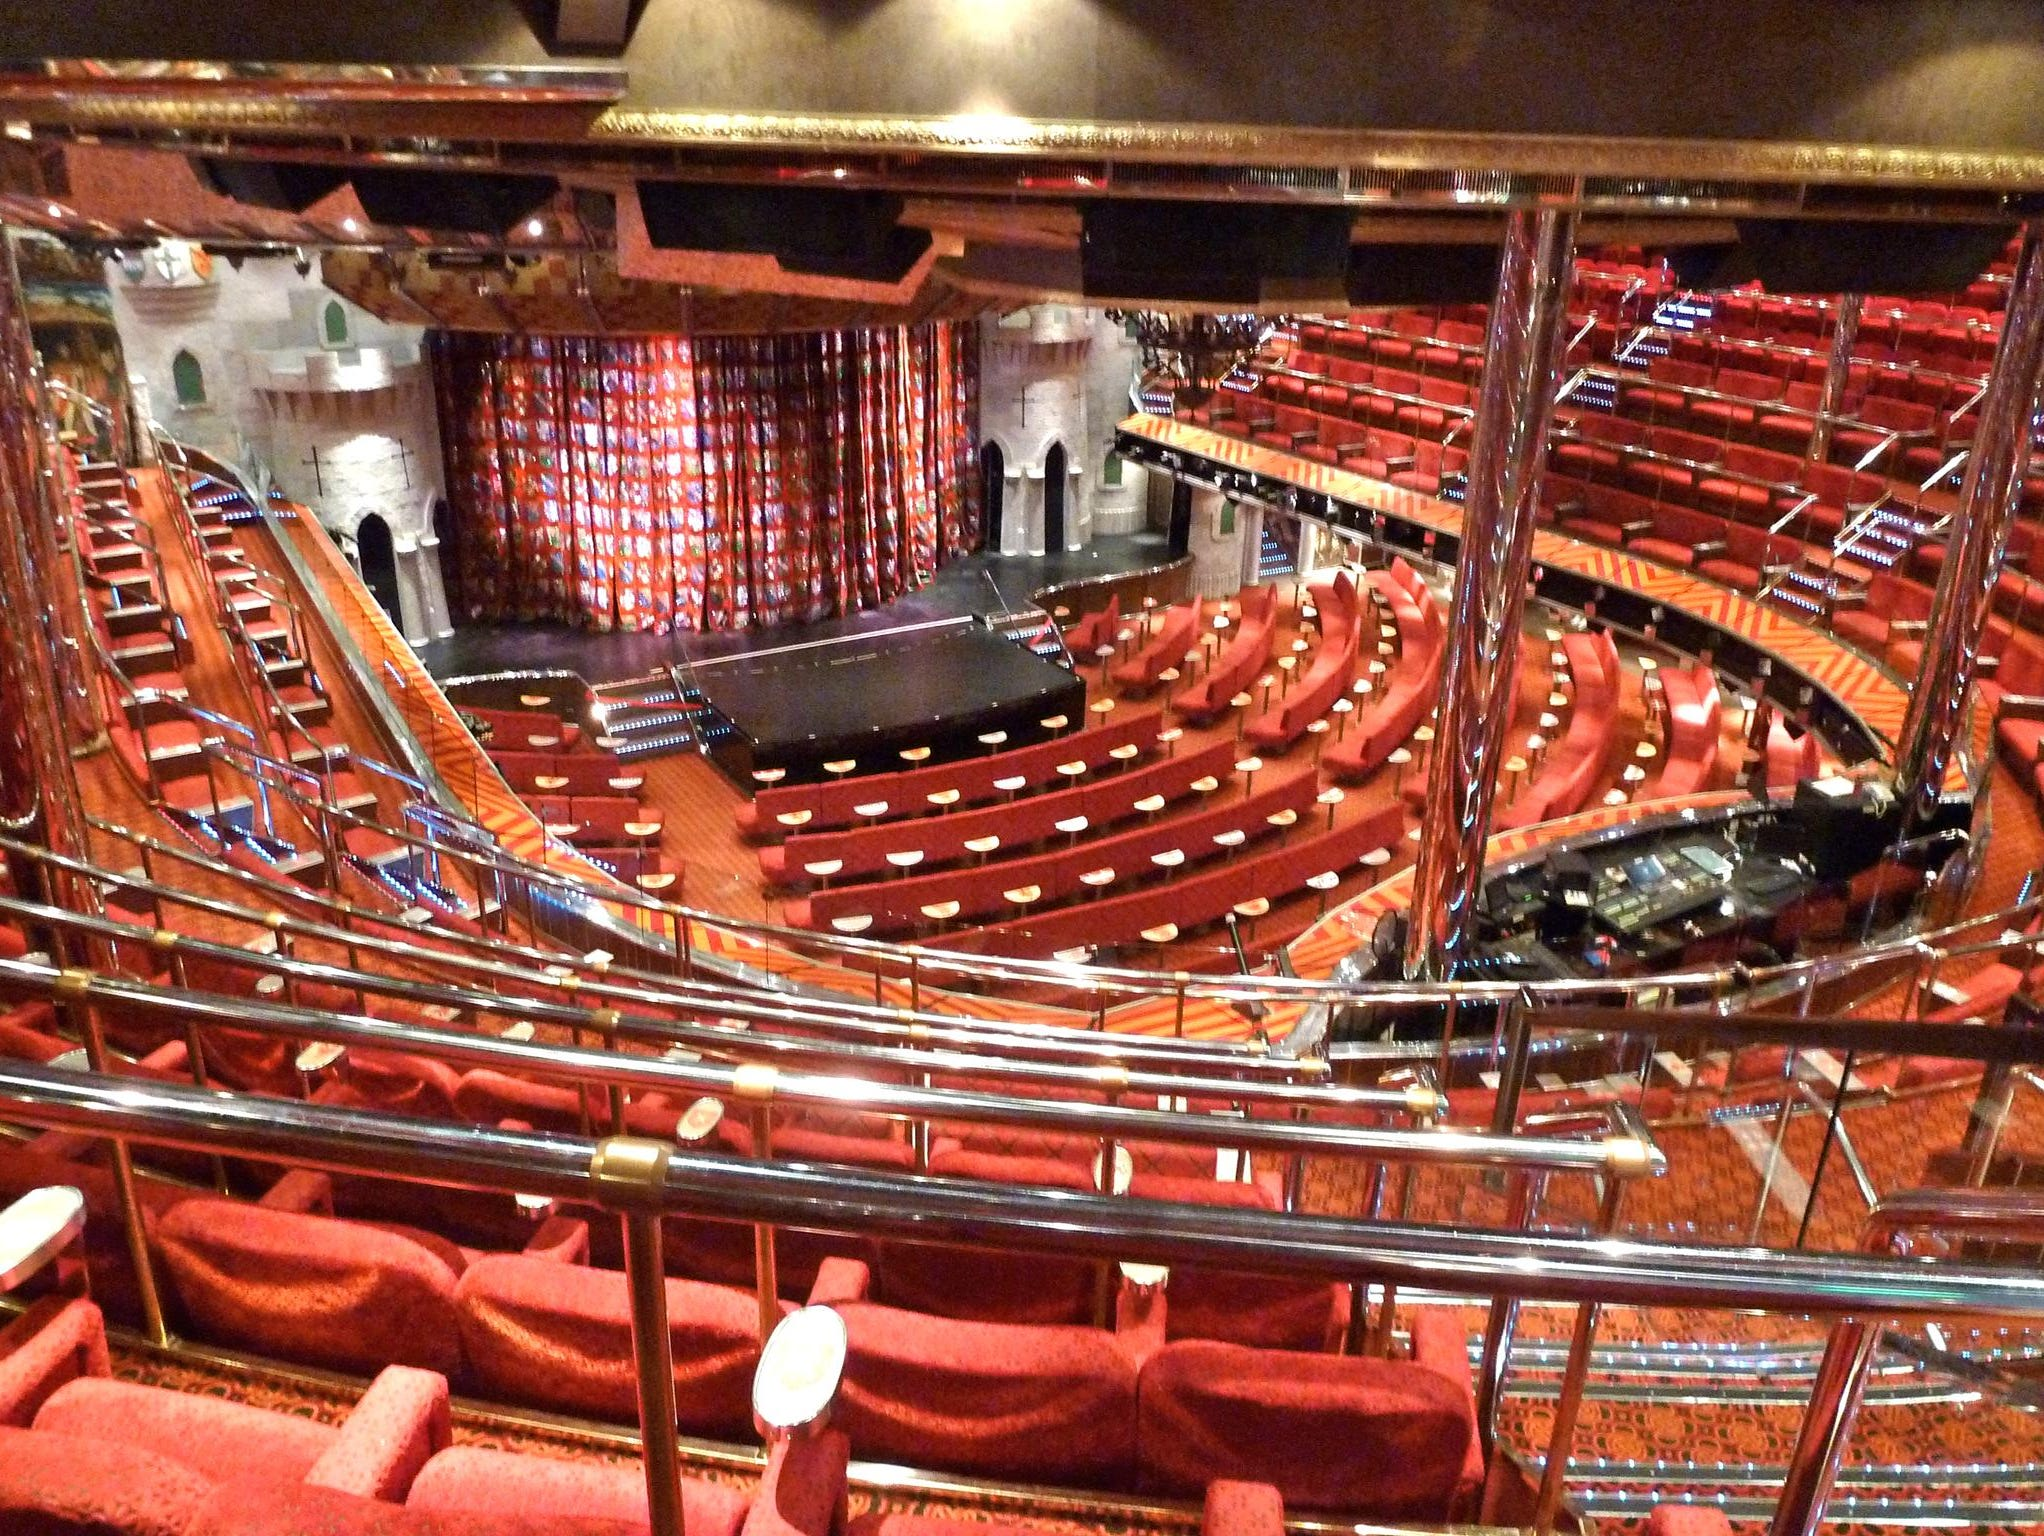 The Ivanhoe Theater is the Carnival Valor's 1,400-seat main show lounge on forward Decks 5 to 3. Decorative touches include giant knights, tapestries and faux wood beams with ornate inscriptions.